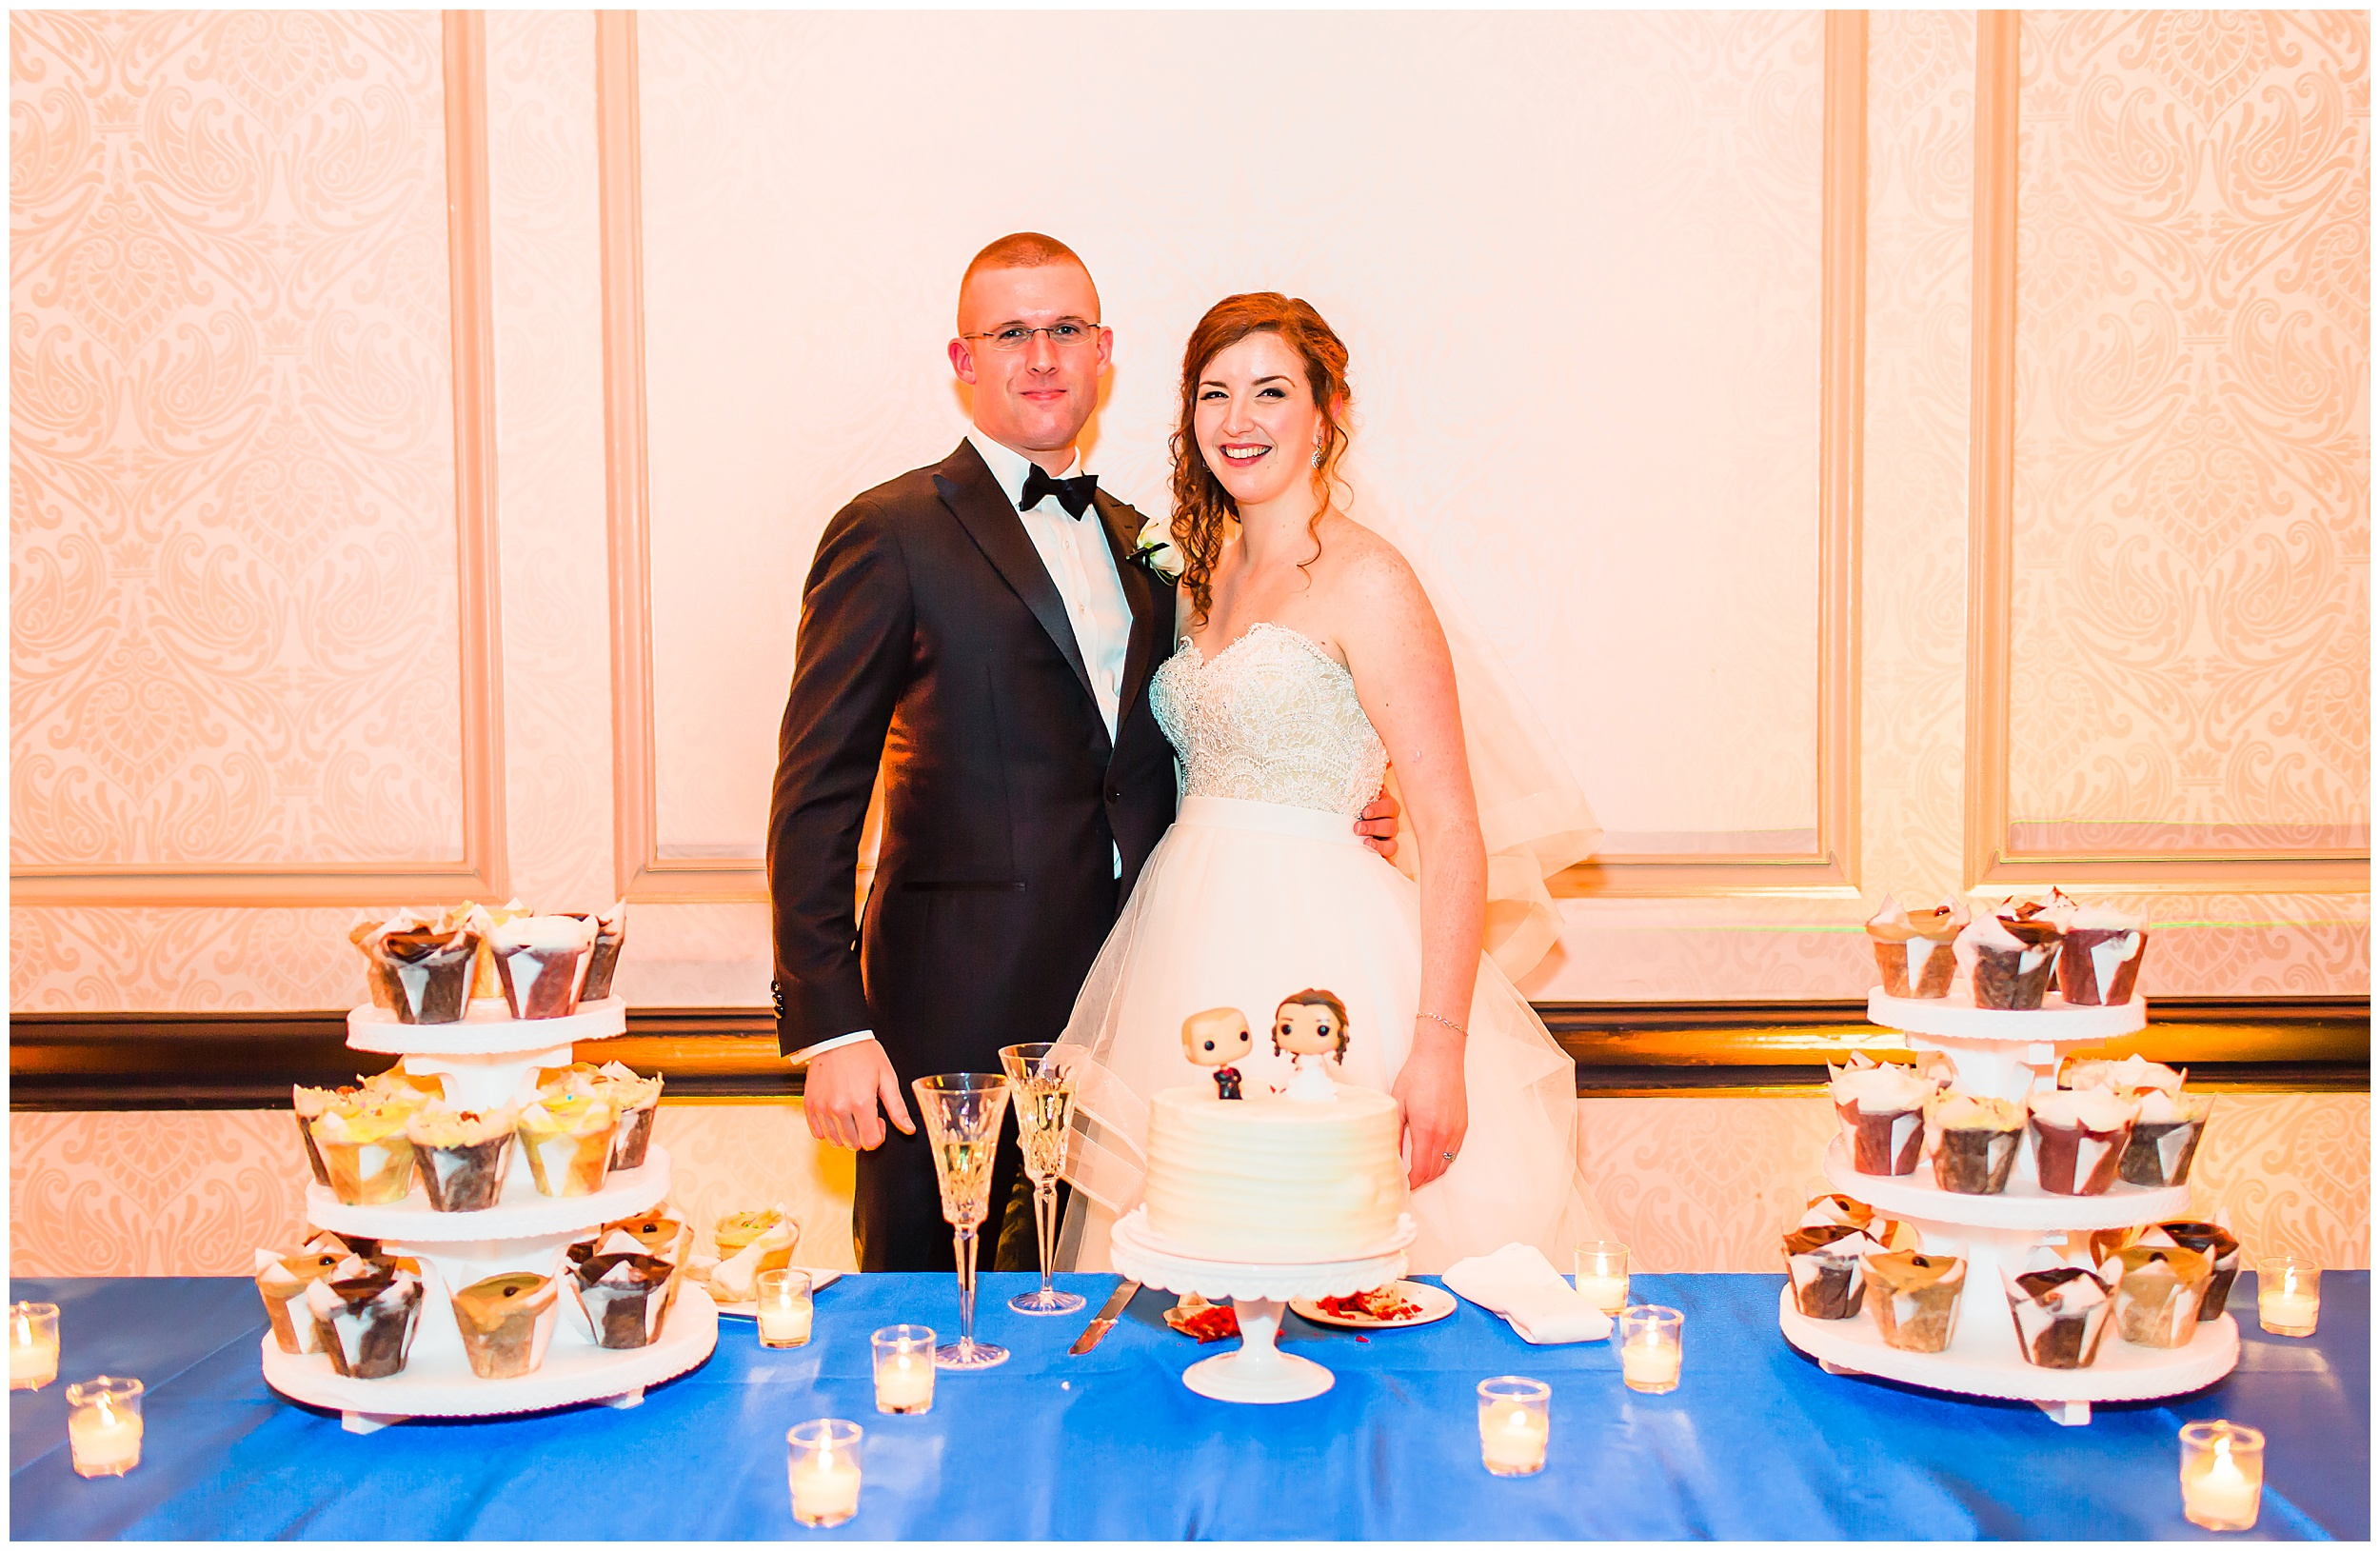 cake-table-portrait-reception